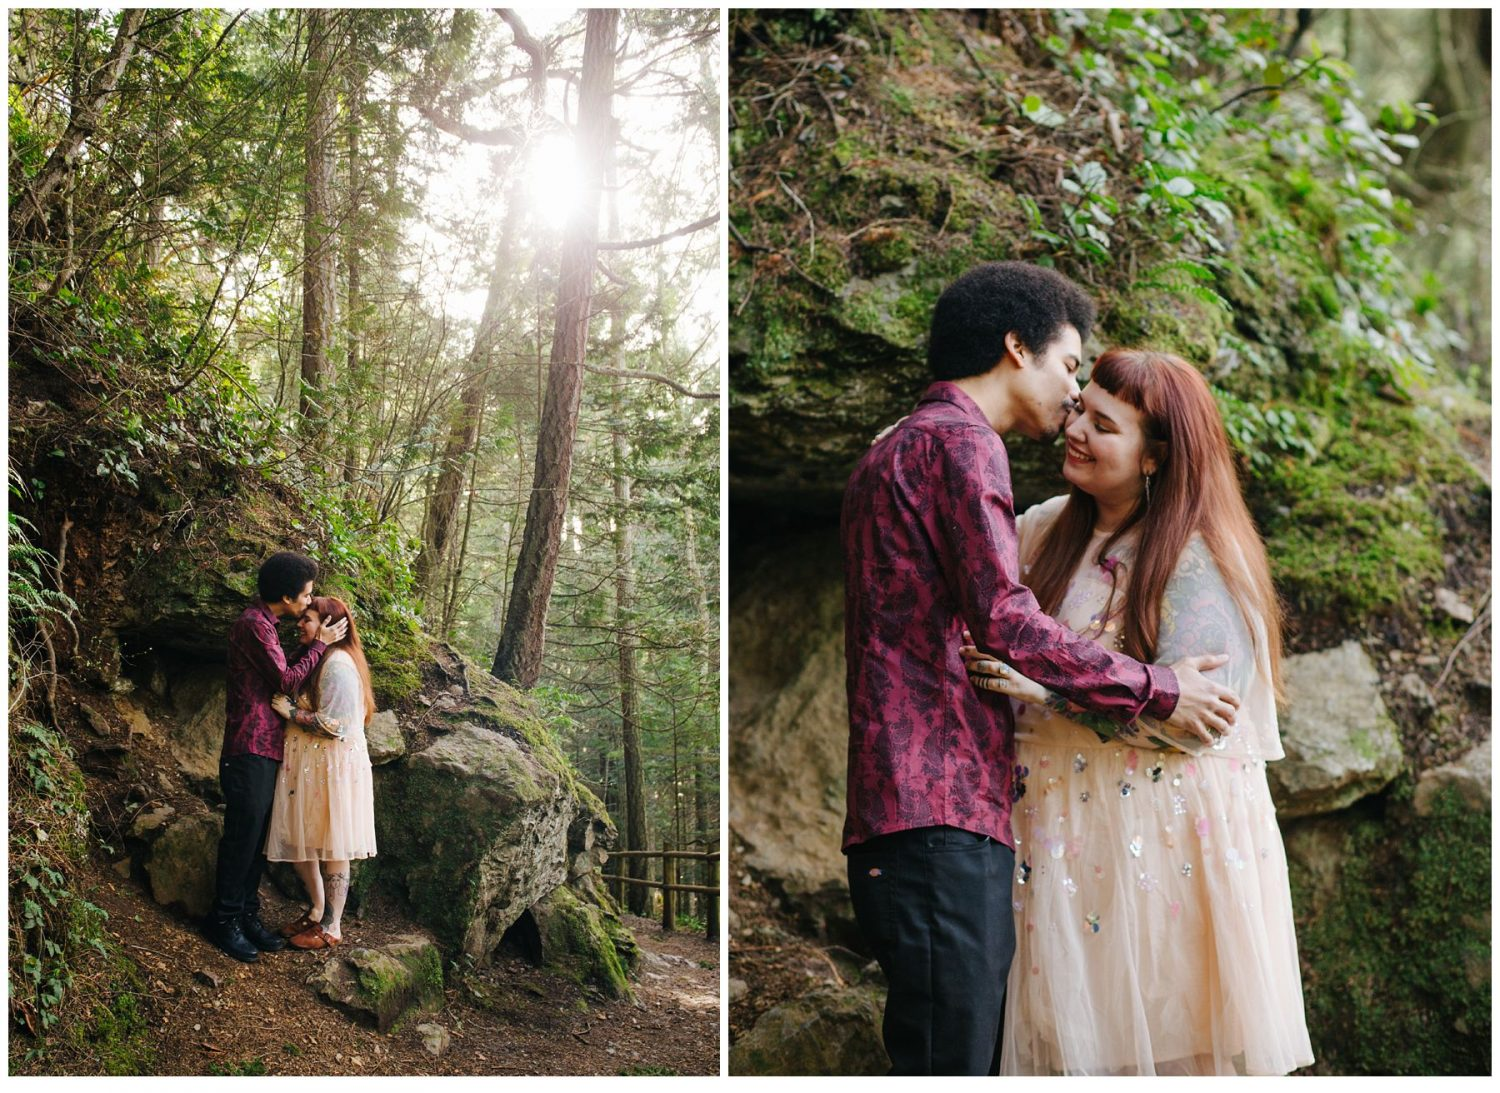 Deception Pass Engagement Session in forest